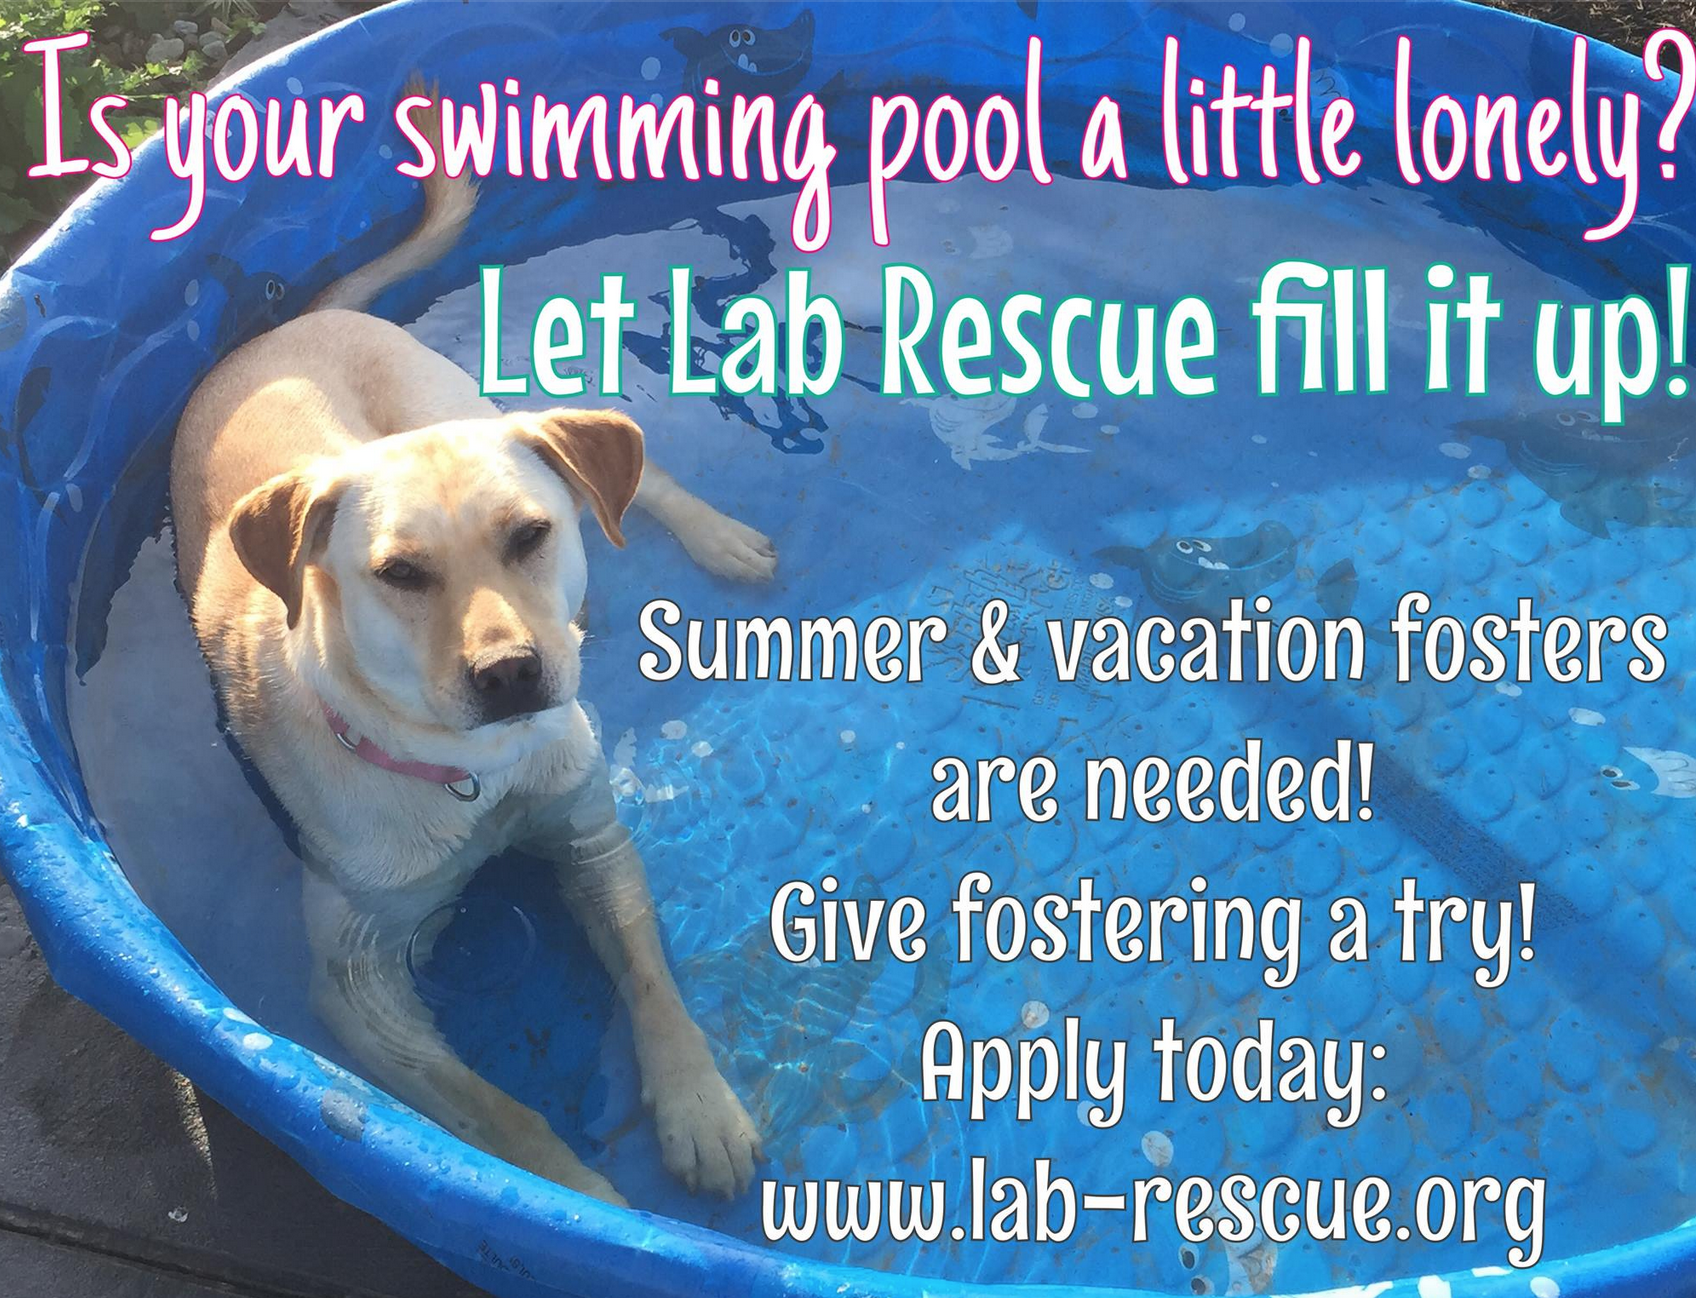 Foster homes needed: Lab Rescue is in need of summer/ vacation foster homes for our gorgeous Labs. Give fostering a try! We can help match you to a Lab that is in need of a loving foster home. If you prefer young, middle age or senior labs we can help find a wonderful lab for you to foster. Apply today- we love our foster homes!!! http://lab-rescue.org